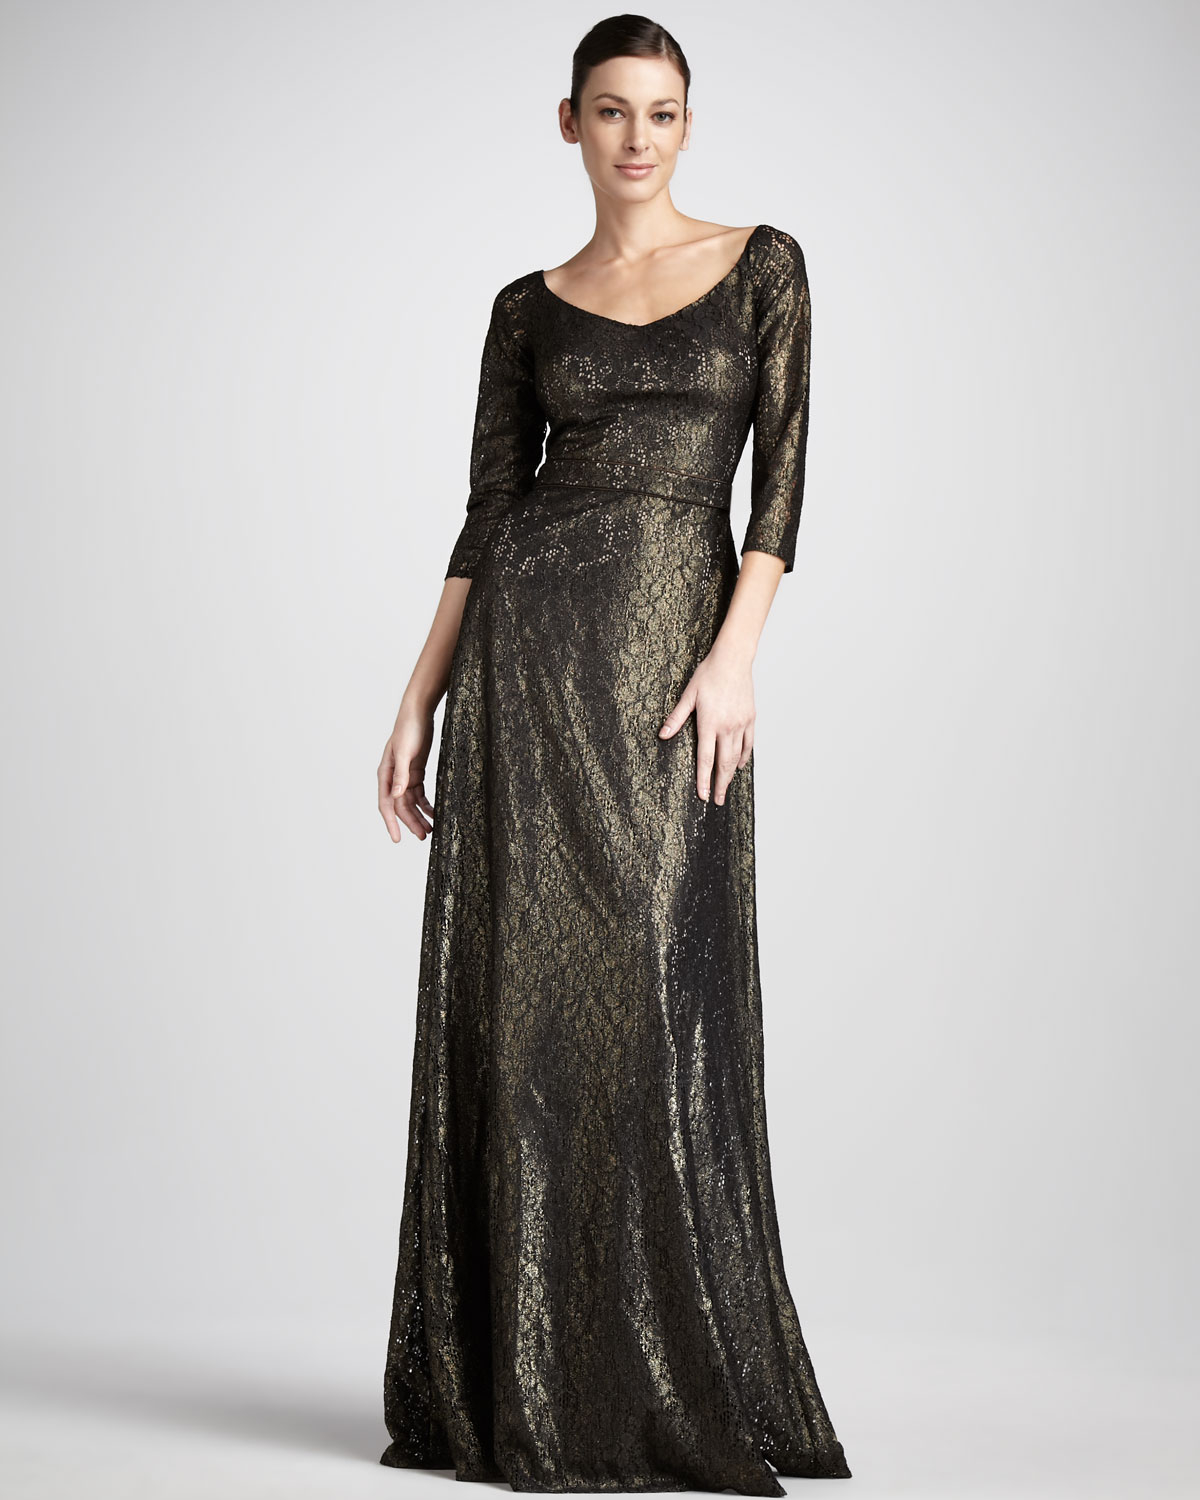 da6849e49eb25 Lyst - David Meister Metallic Lace Gown in Black